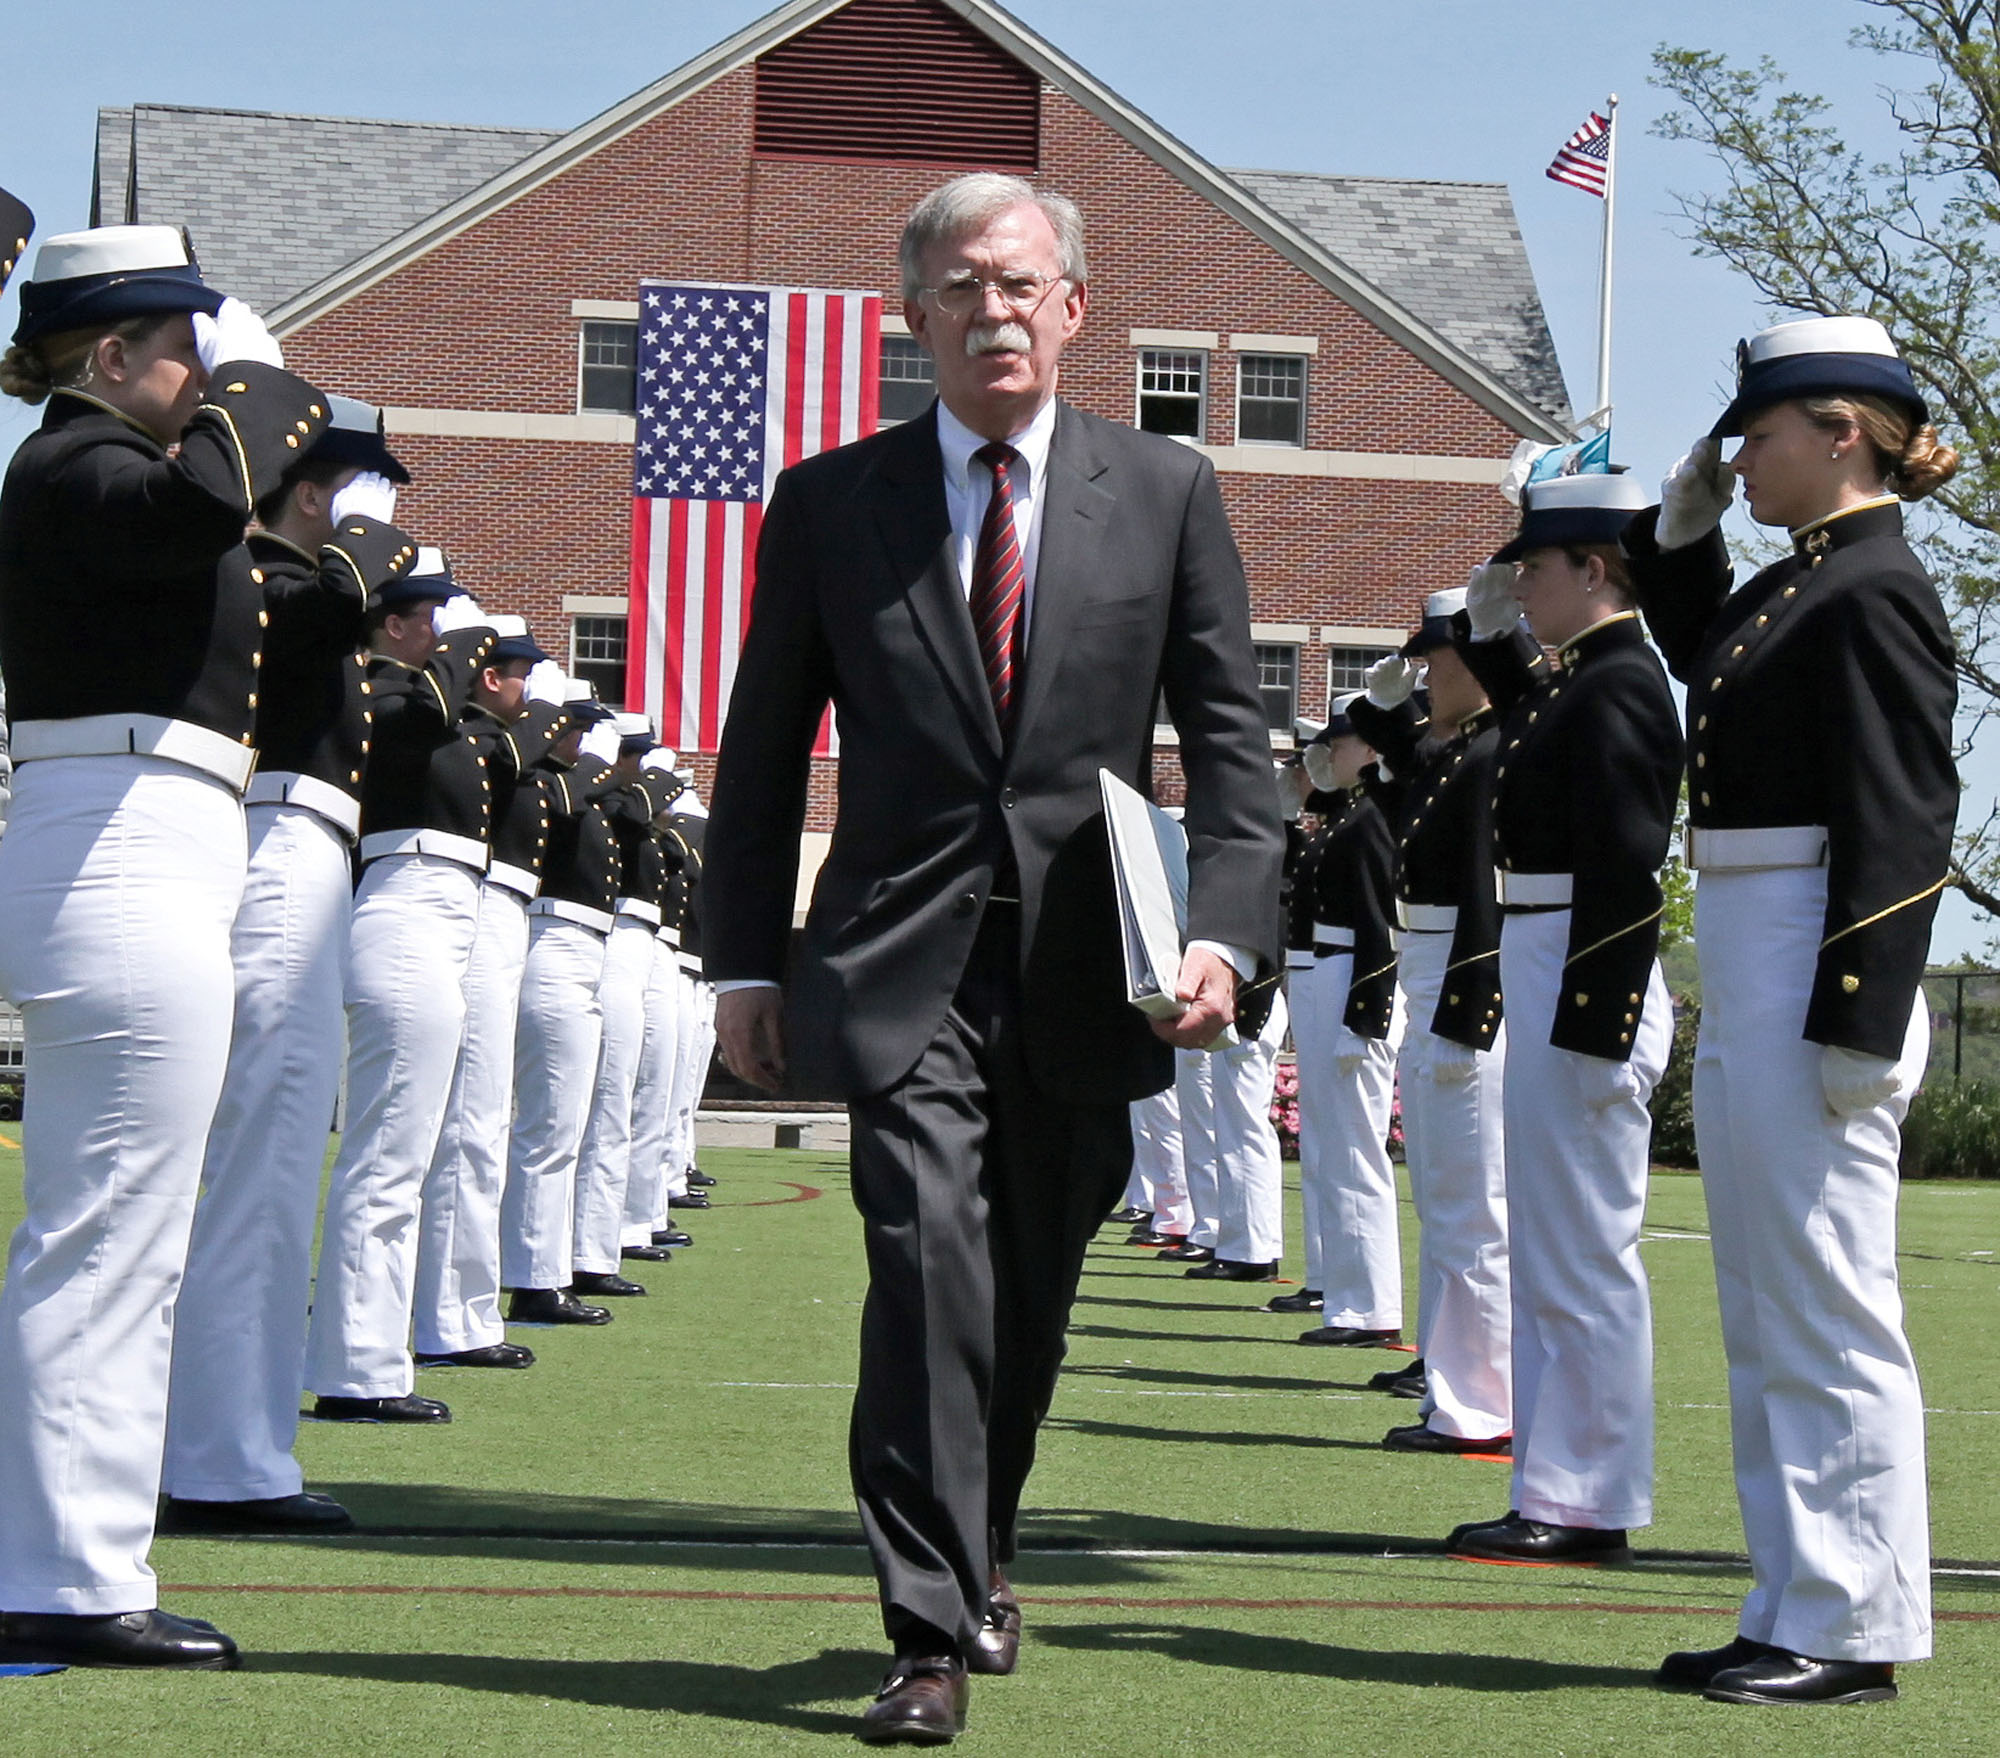 U.S. national security adviser John Bolton arrives to attend a graduation ceremony at the U.S. Coast Guard Academy in New London, Connecticut, on Wednesday. | REUTERS